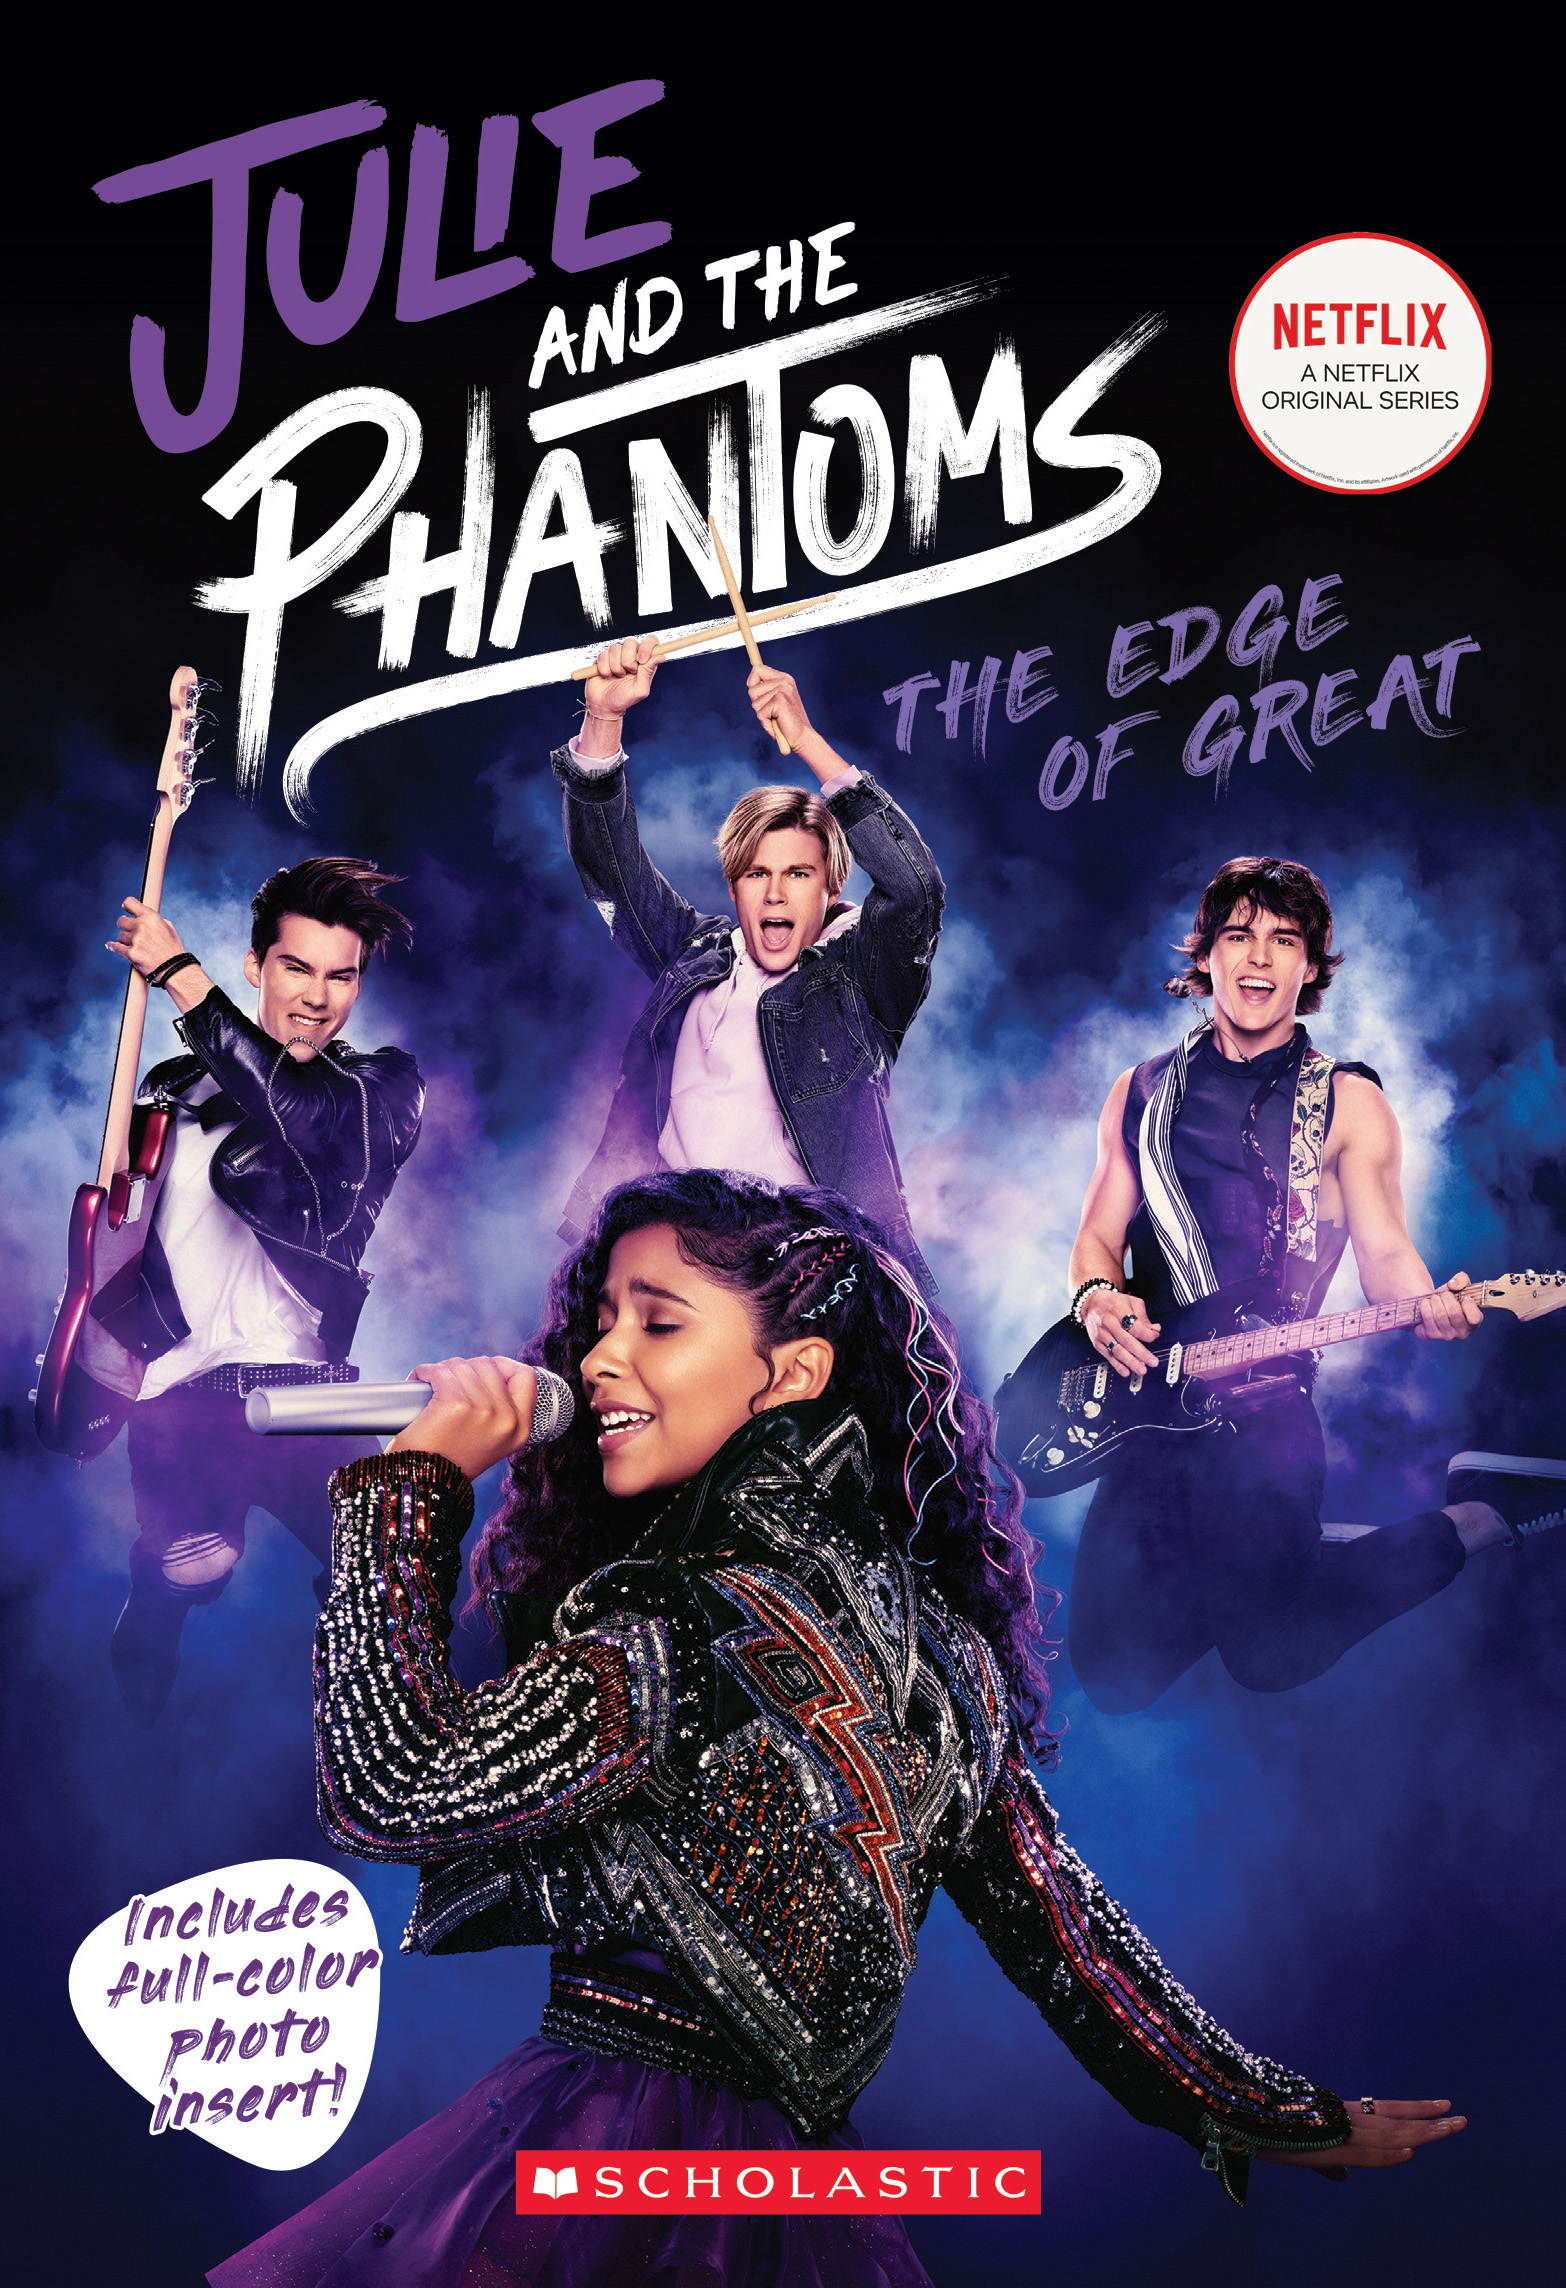 Julie and the Phantoms: The Edge of Great